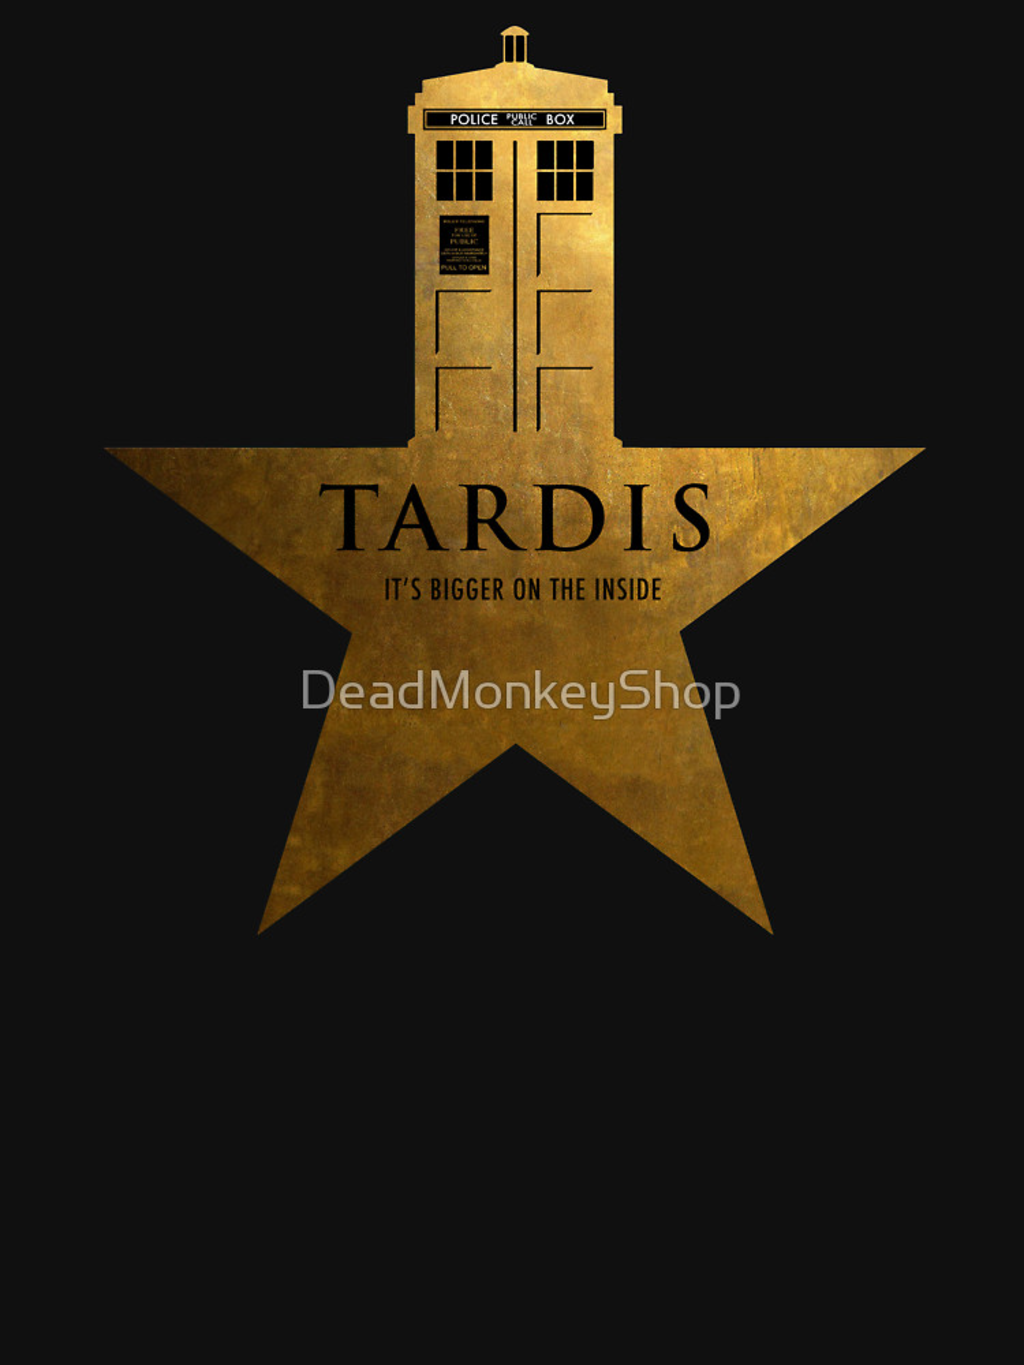 RedBubble: TARDIS - It's Bigger on the Inside